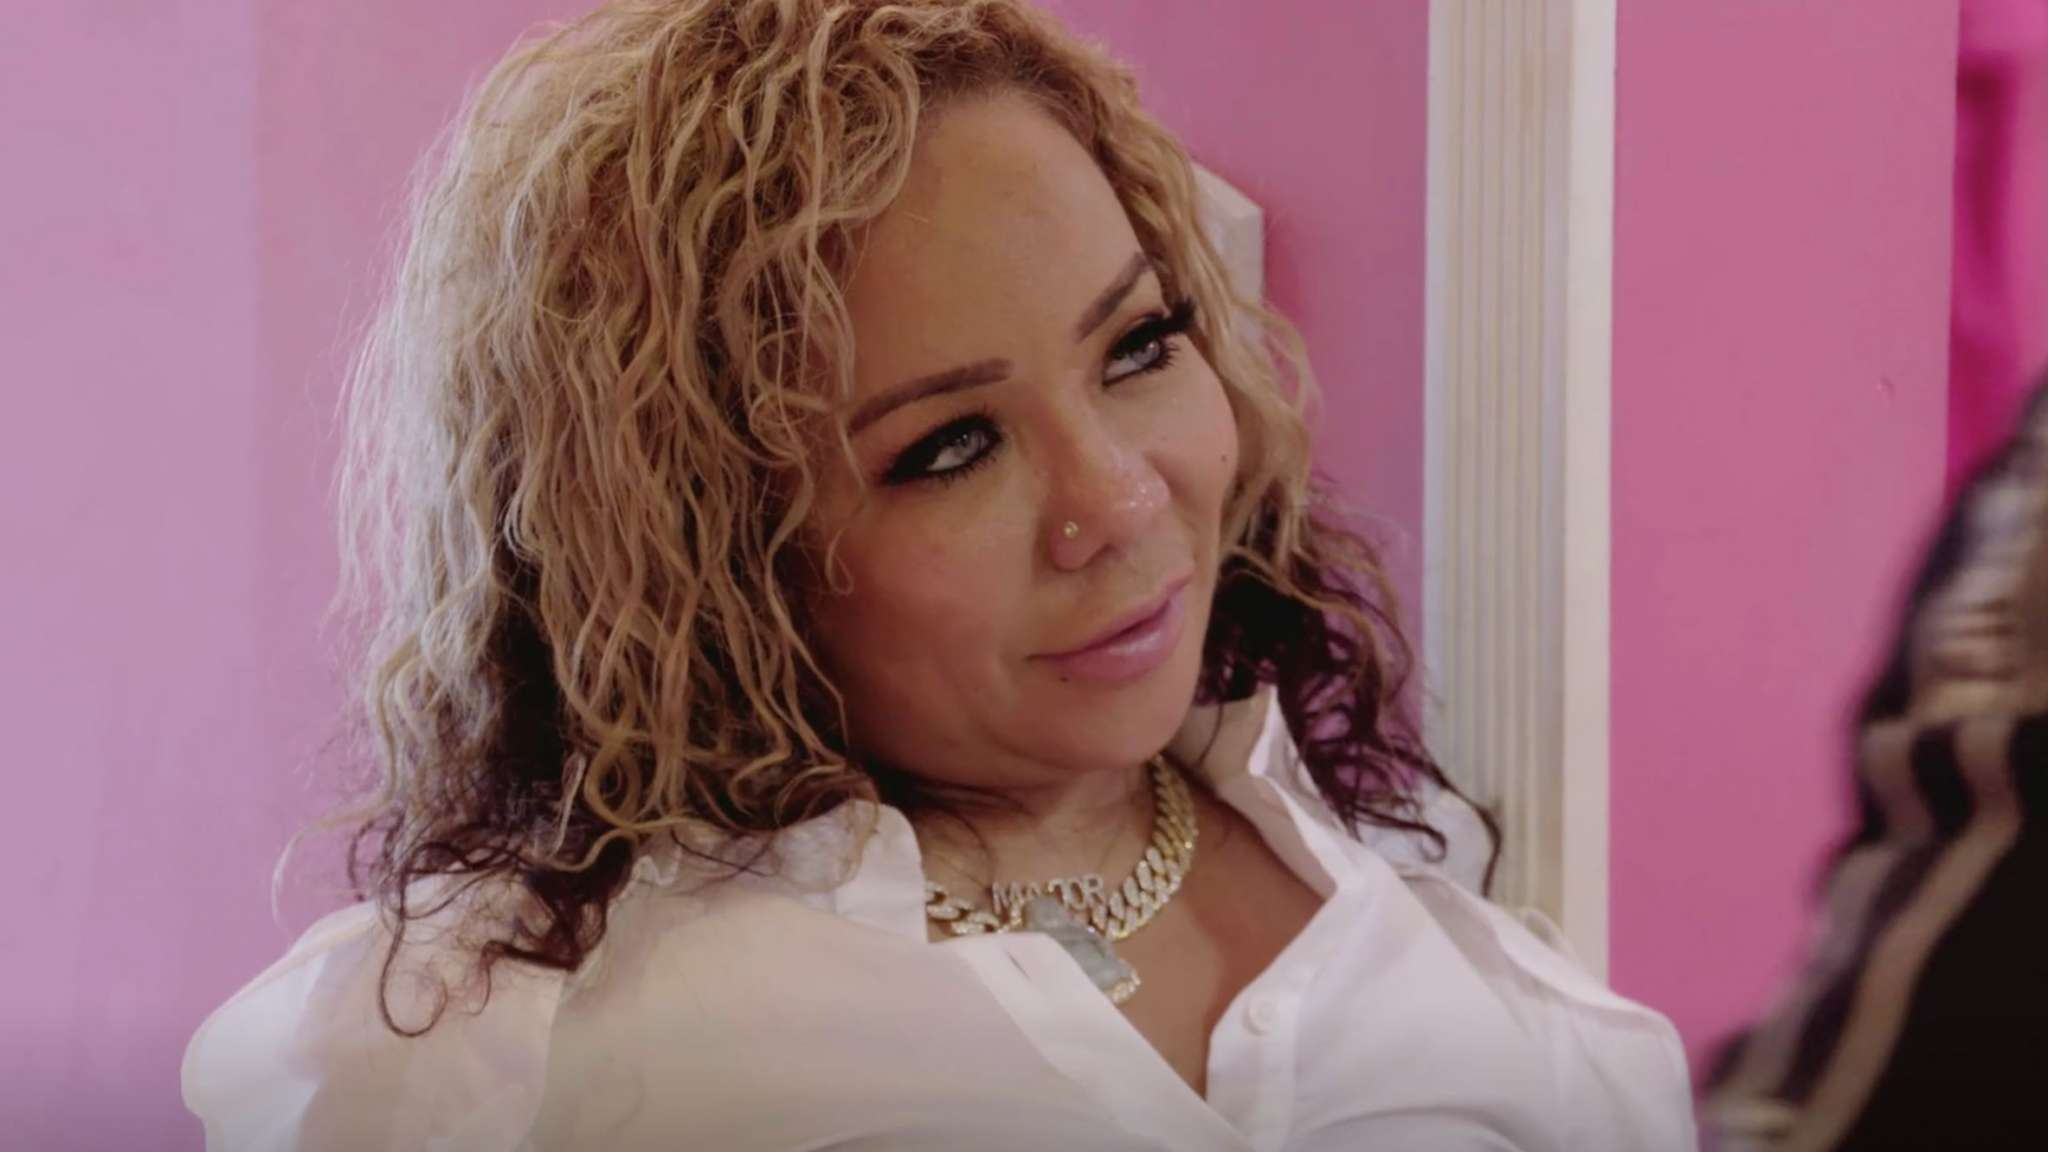 Tiny Harris Is Feeling 'Like A Vibe' These Days - Fans Appreciate That T.I. Knows 'Good Things Come In Small Packages'